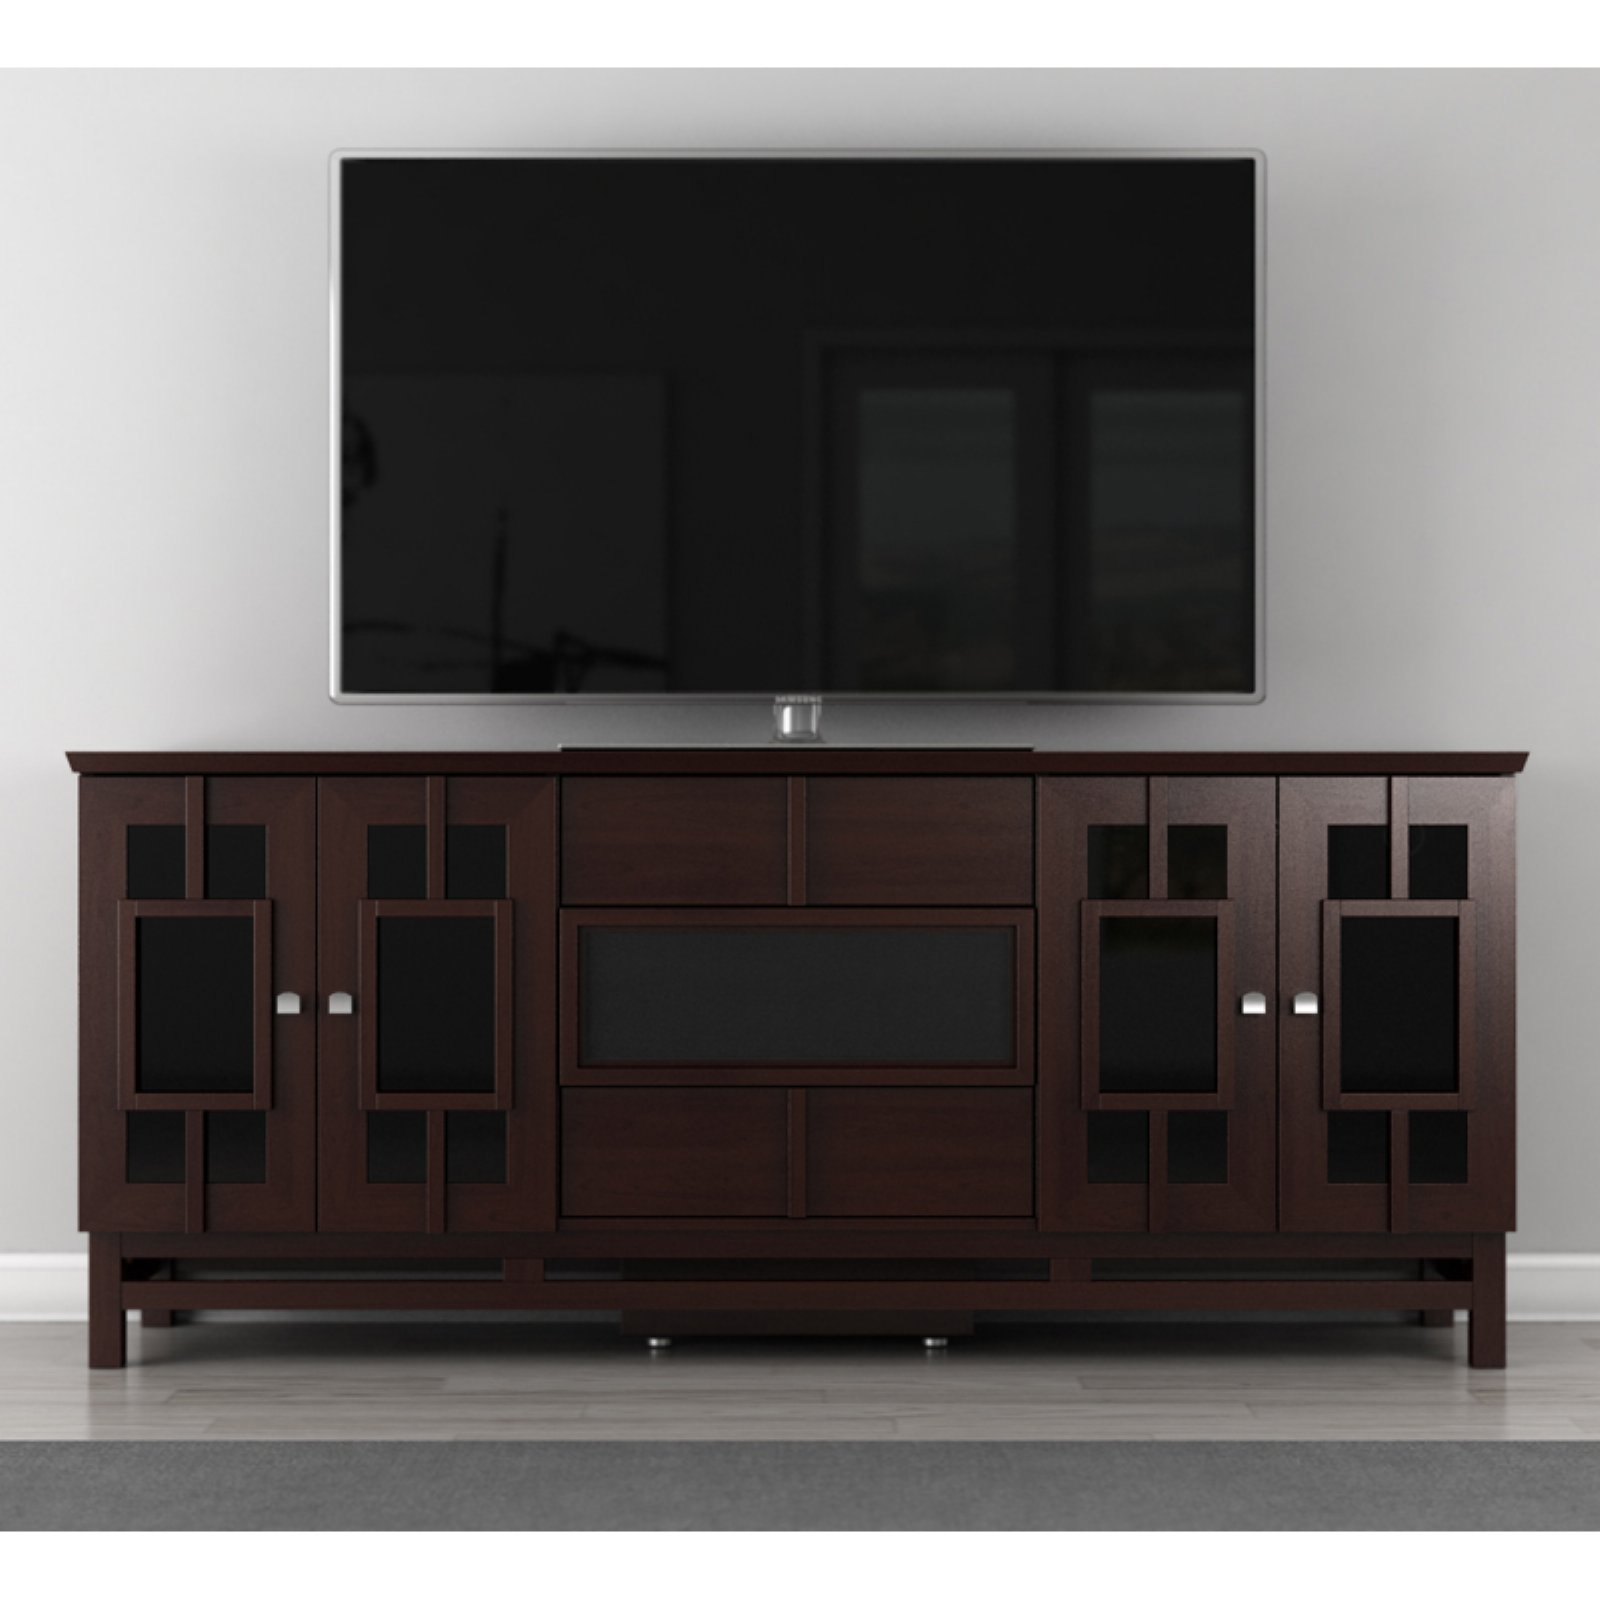 Furnitech Contemporary Asian 70 Inch TV Stand